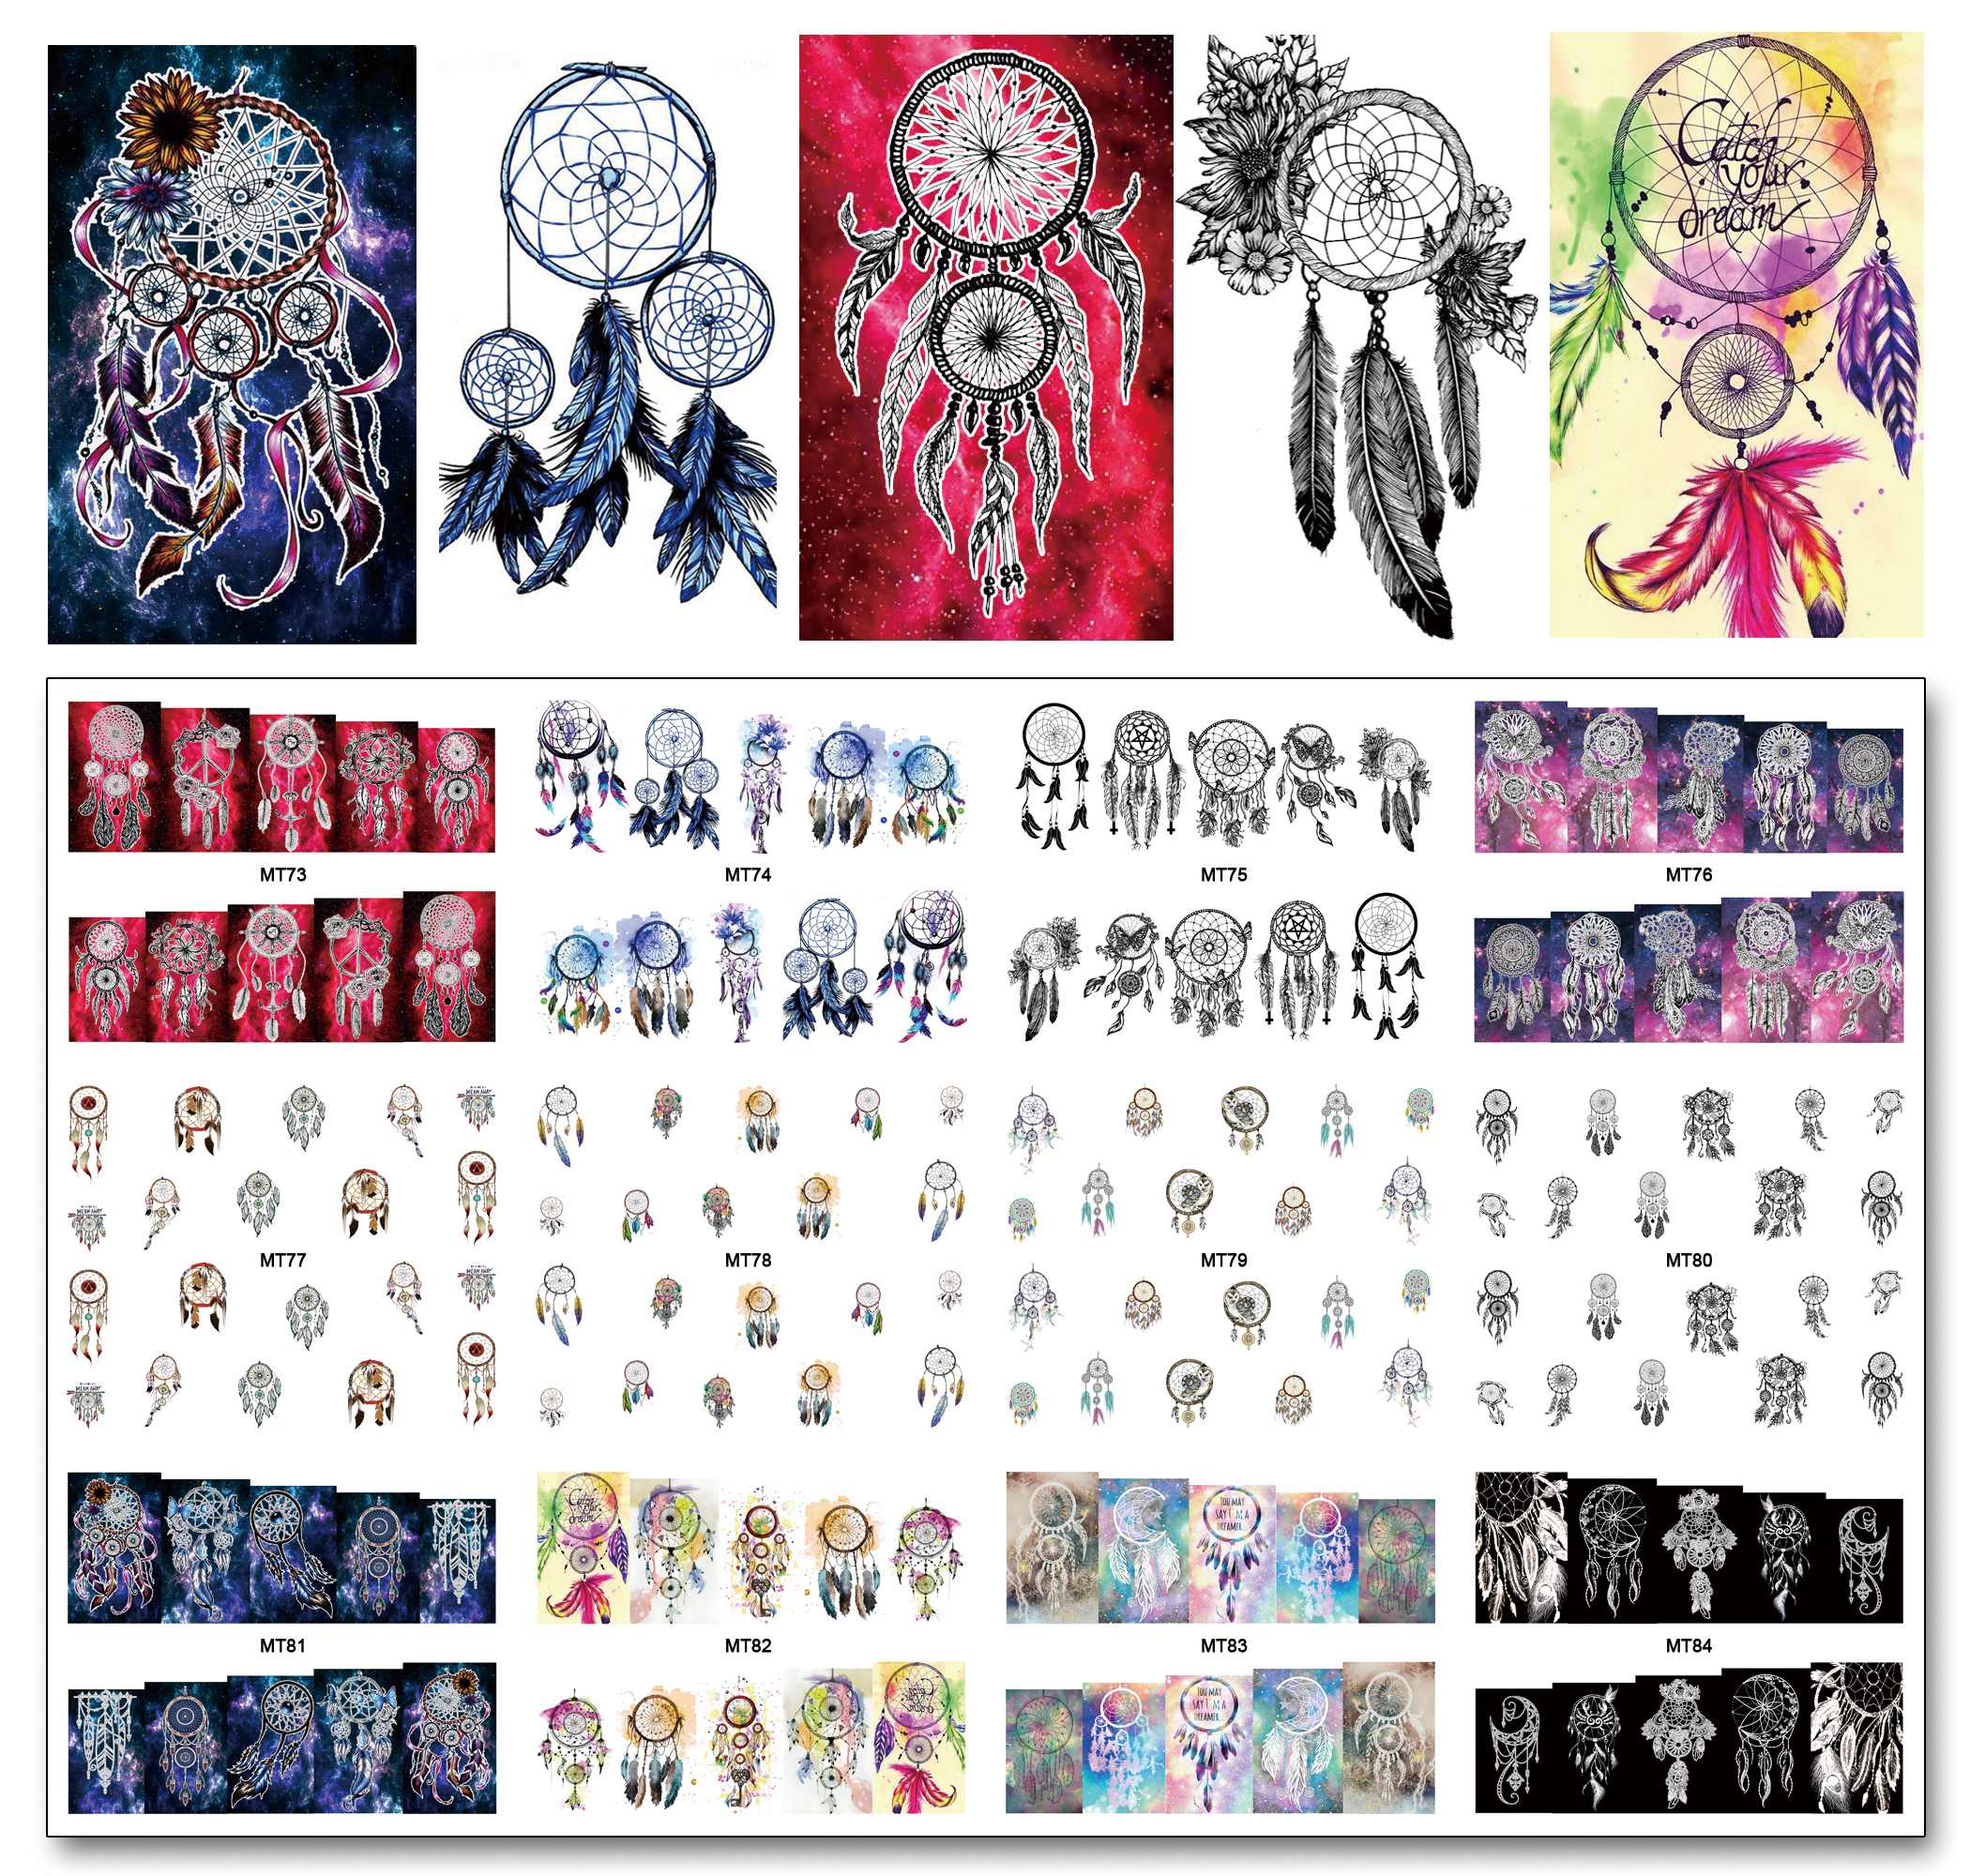 Nail 12 Sheets/Lot MT73-84 Colorful Dream Catcher Nail Art Water Decal Sticker For Nail Art Tattoo Decoration(12 DESIGNS IN 1) 4 packs lot full cover white french smile lace tattoos sticker water decal nail art d363 366w